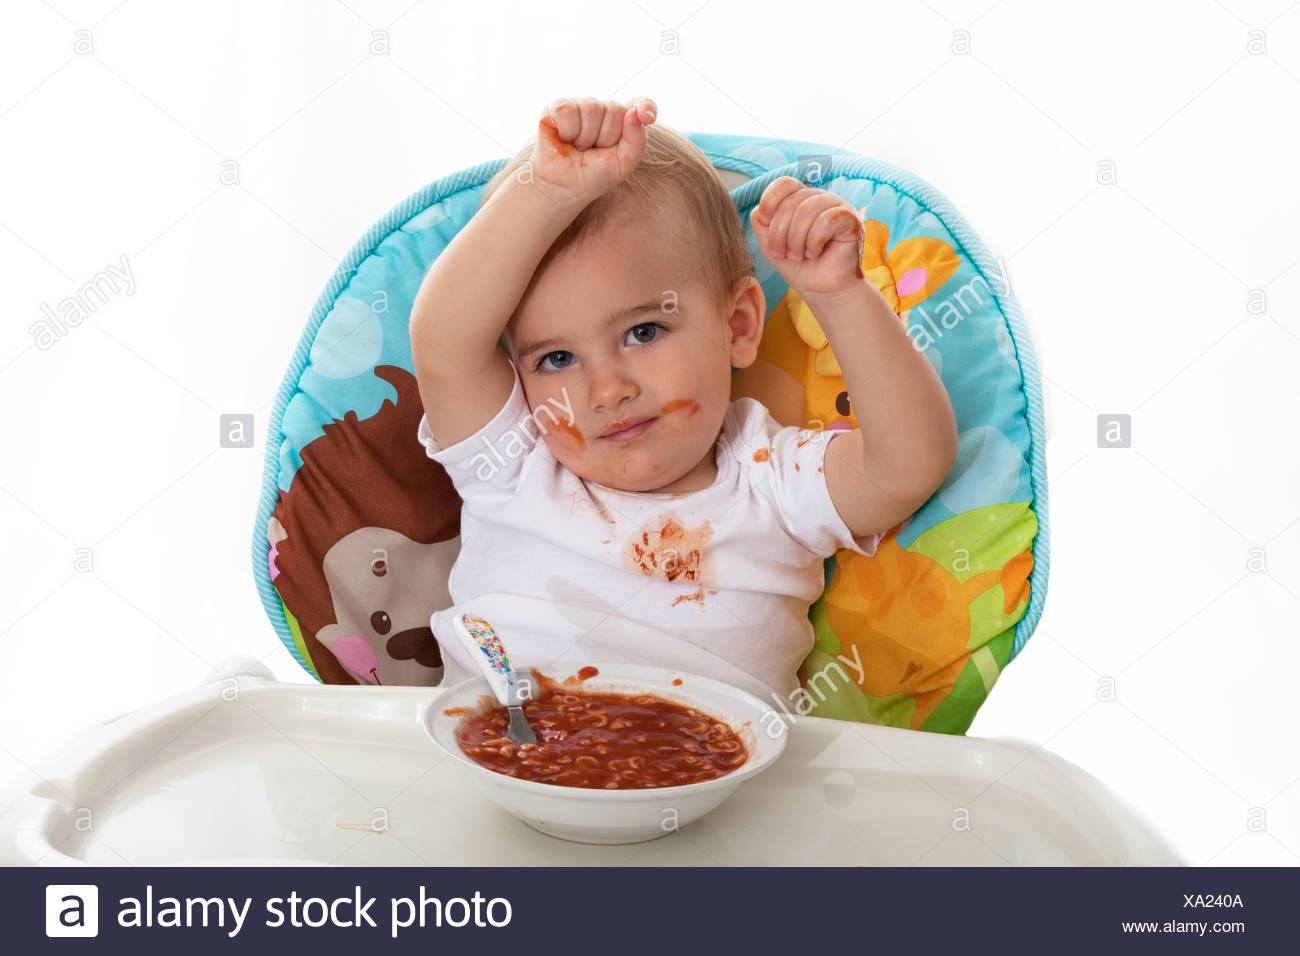 Baby mealtime mess - Stock Image